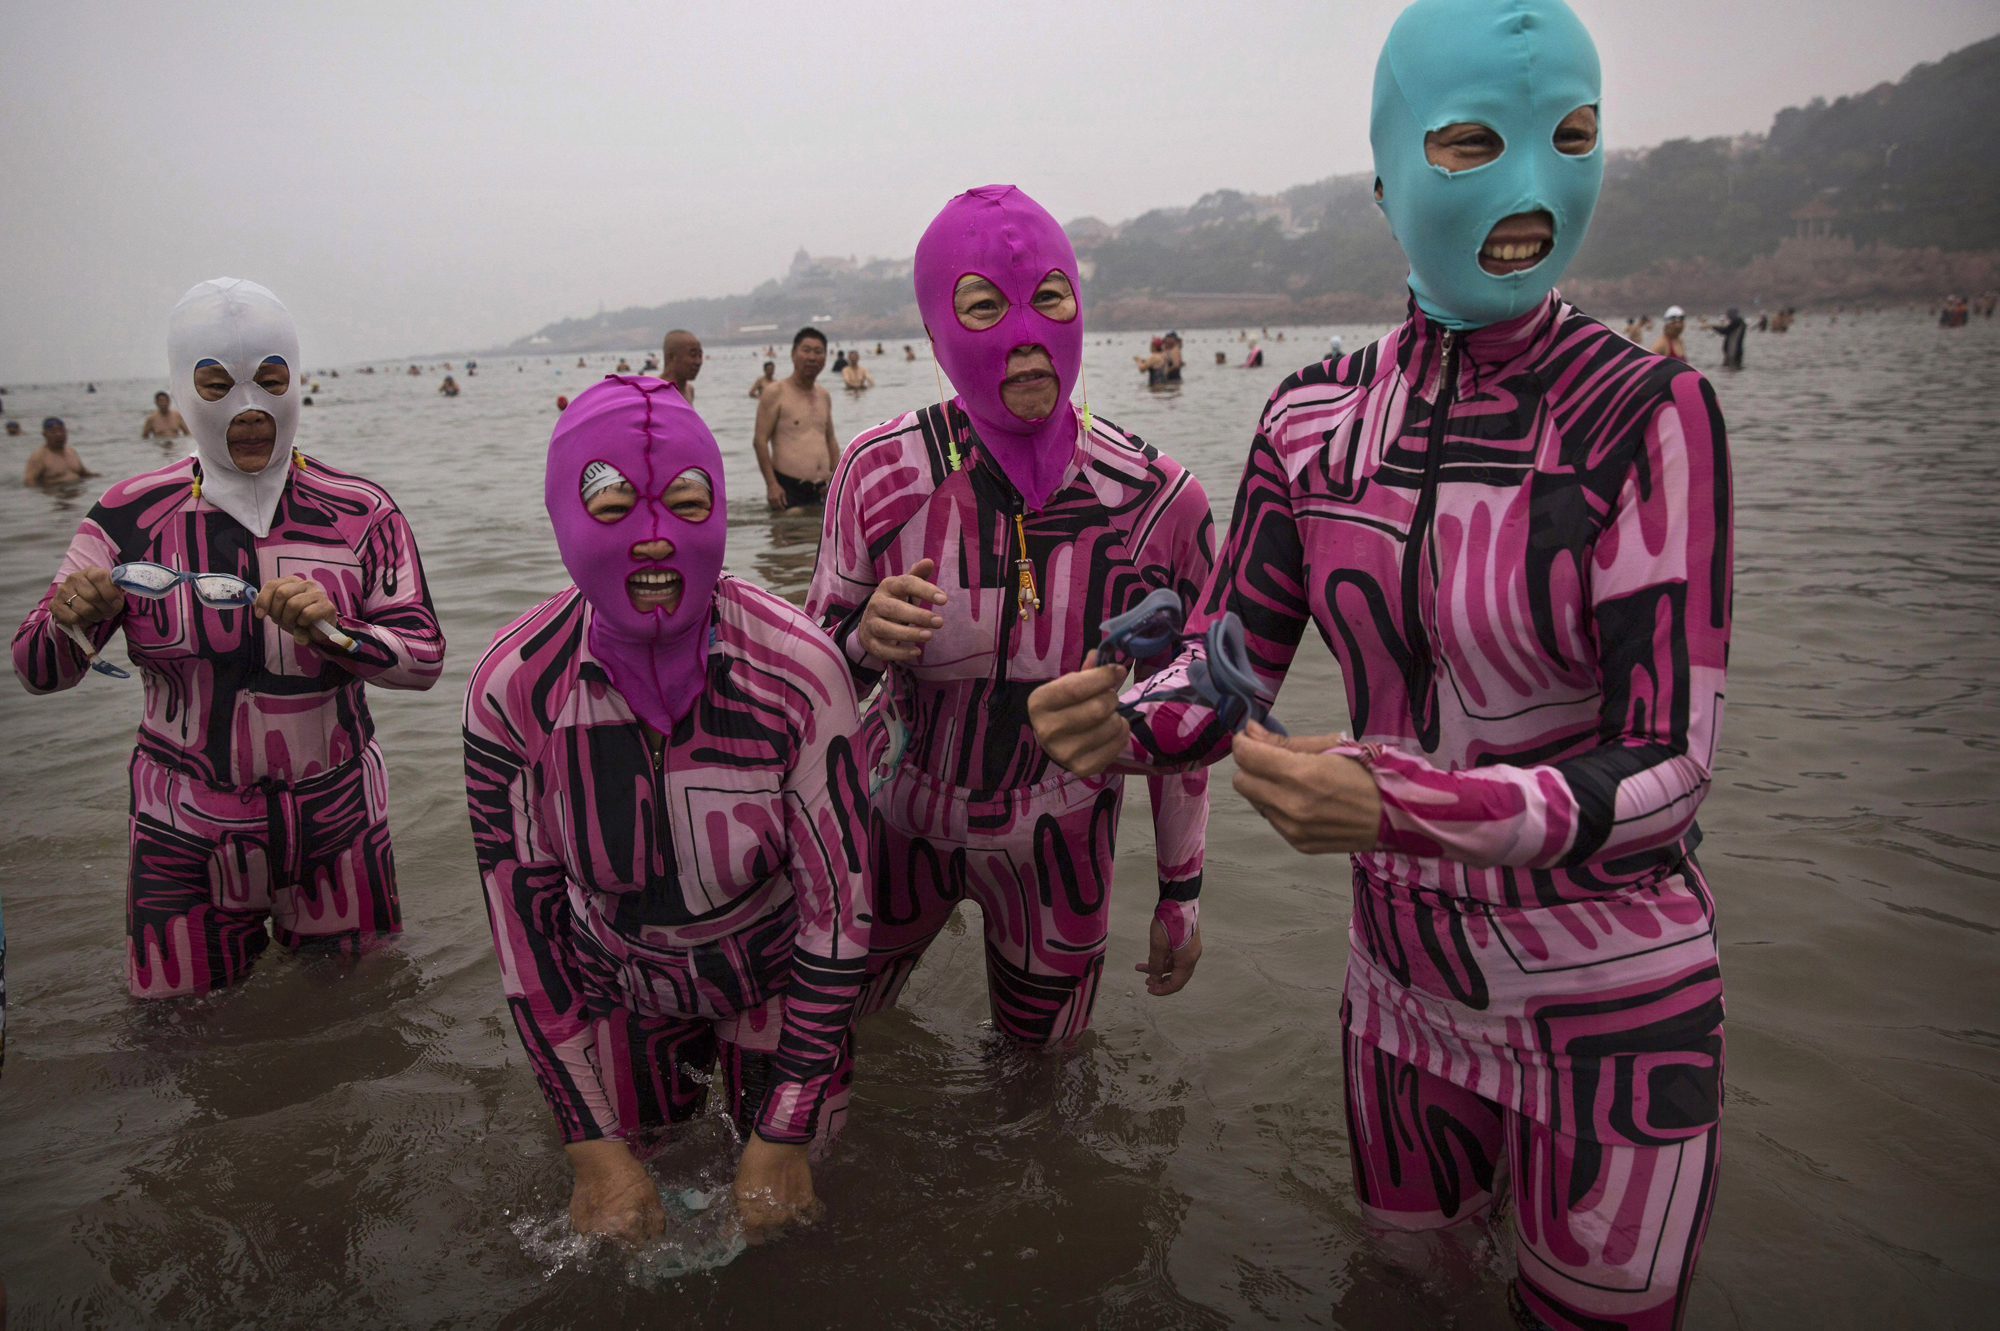 Women wear facekinis as they stand in the water on Aug. 20, 2014, on the Yellow Sea in Qingdao.